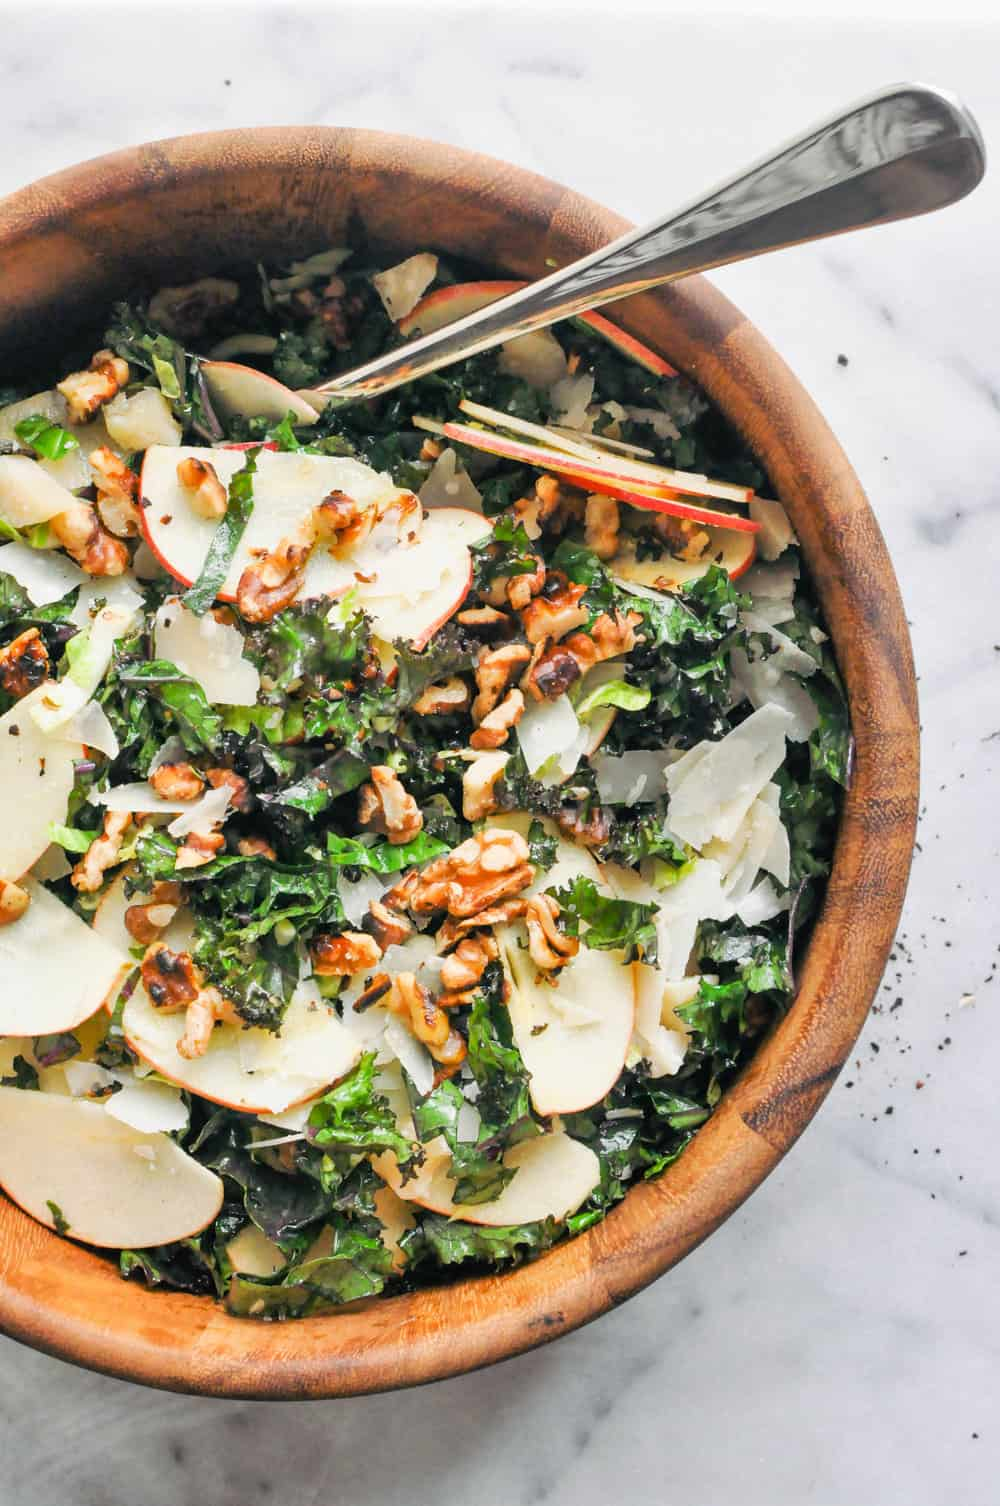 Shredded Brussels Sprouts, Kale and Apple Salad in a wooden bowl